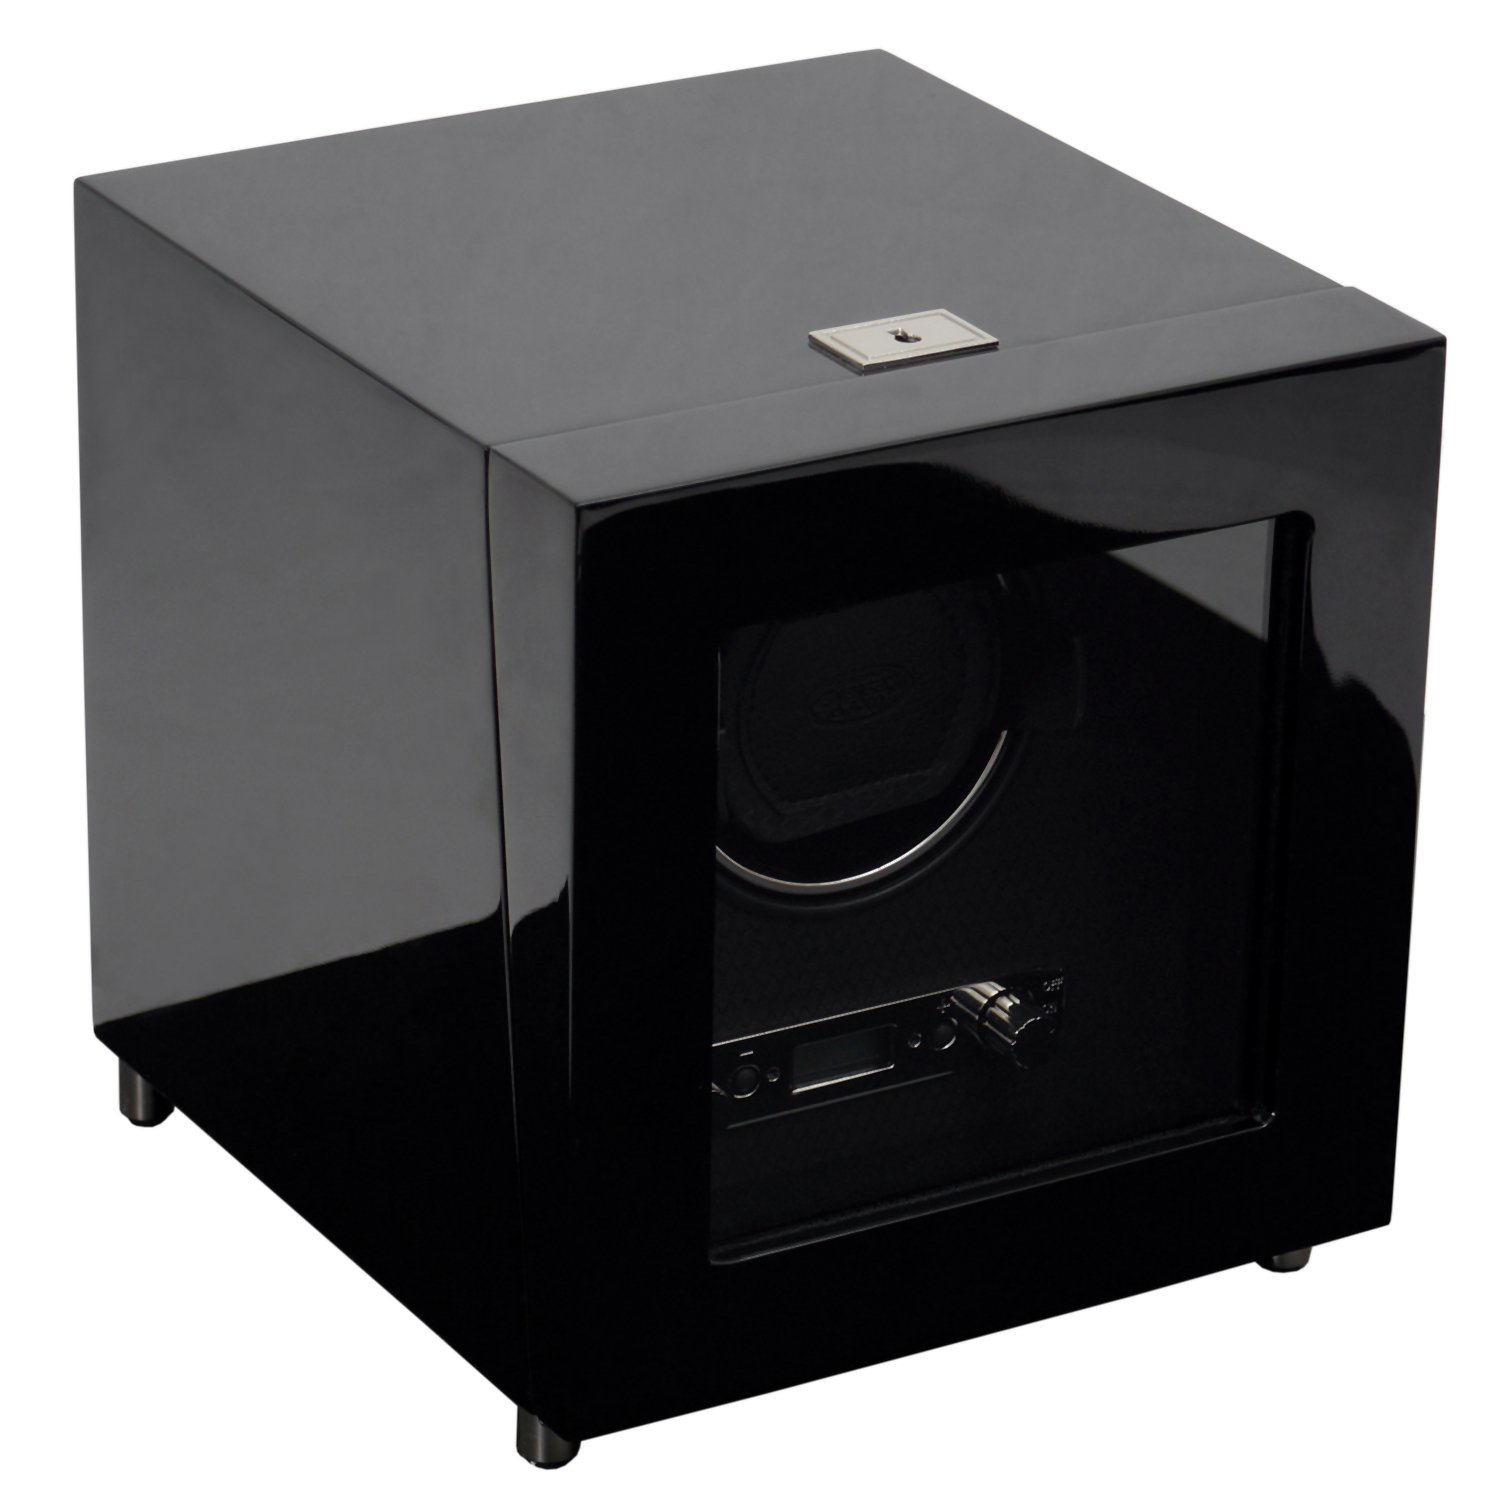 WOLF 454470 Savoy Single Watch Winder with Cover, Black